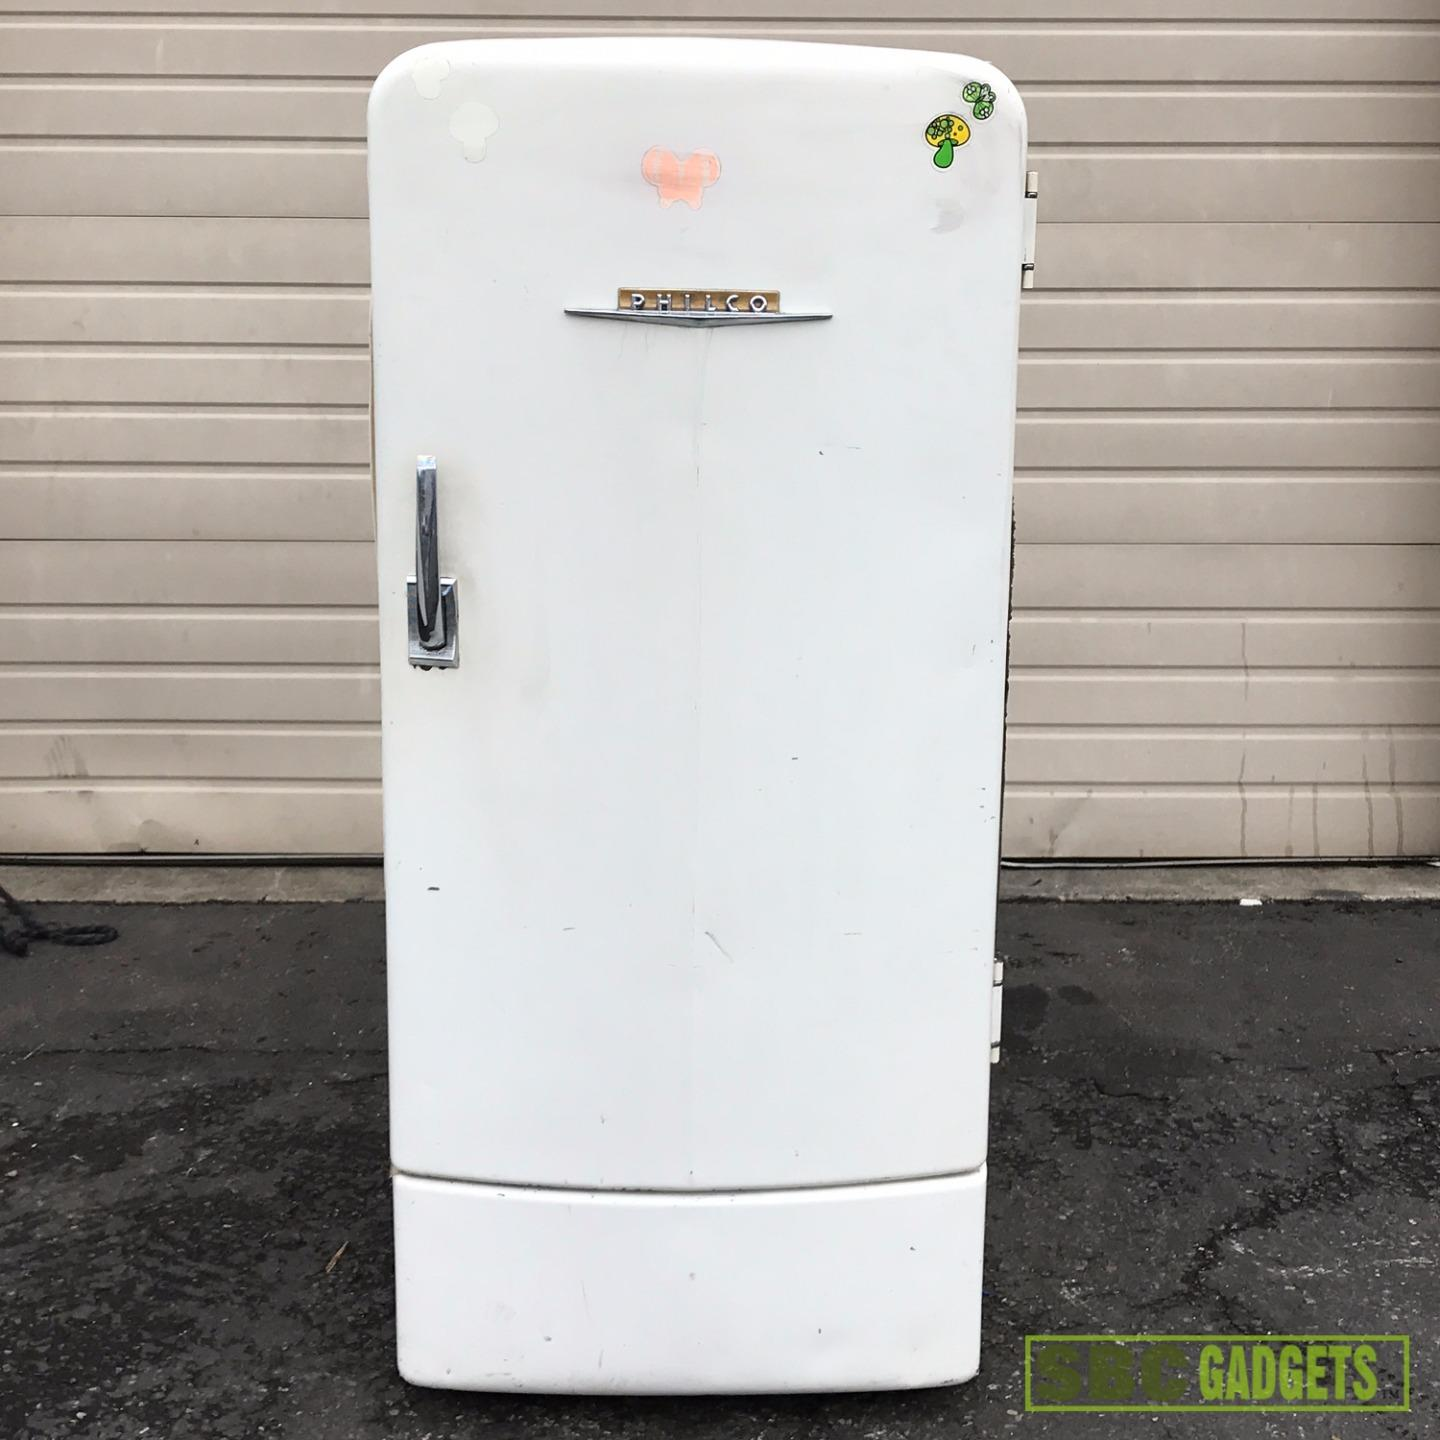 Antique vintage unfinished refrigerators -  Refrigerator Still Works Item Specifics